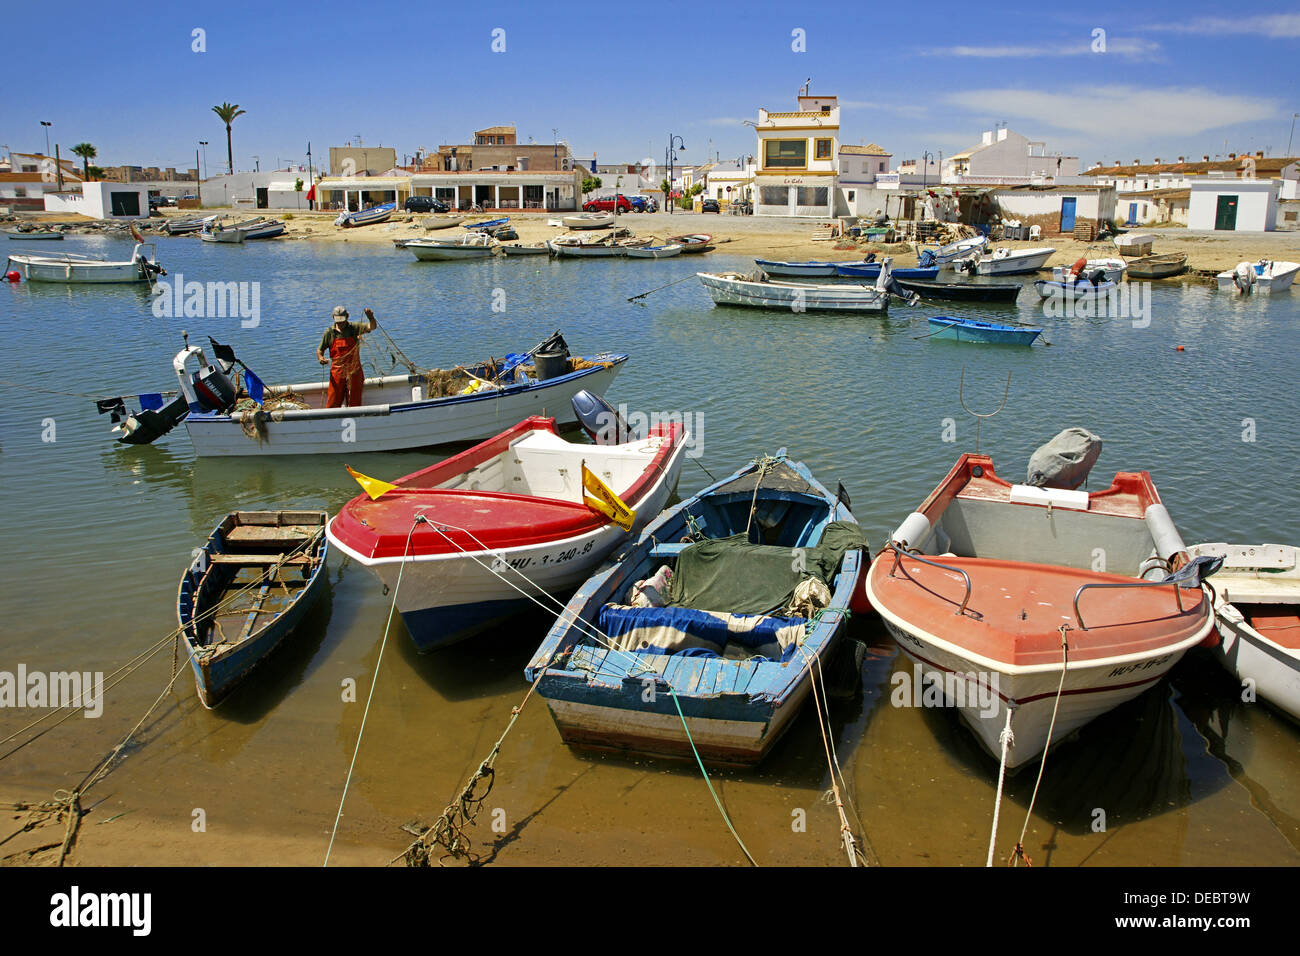 Fishing harbour at Punta del Moral on Isla Canela, Ayamonte, Huelva province, Andalusia, Spain - Stock Image